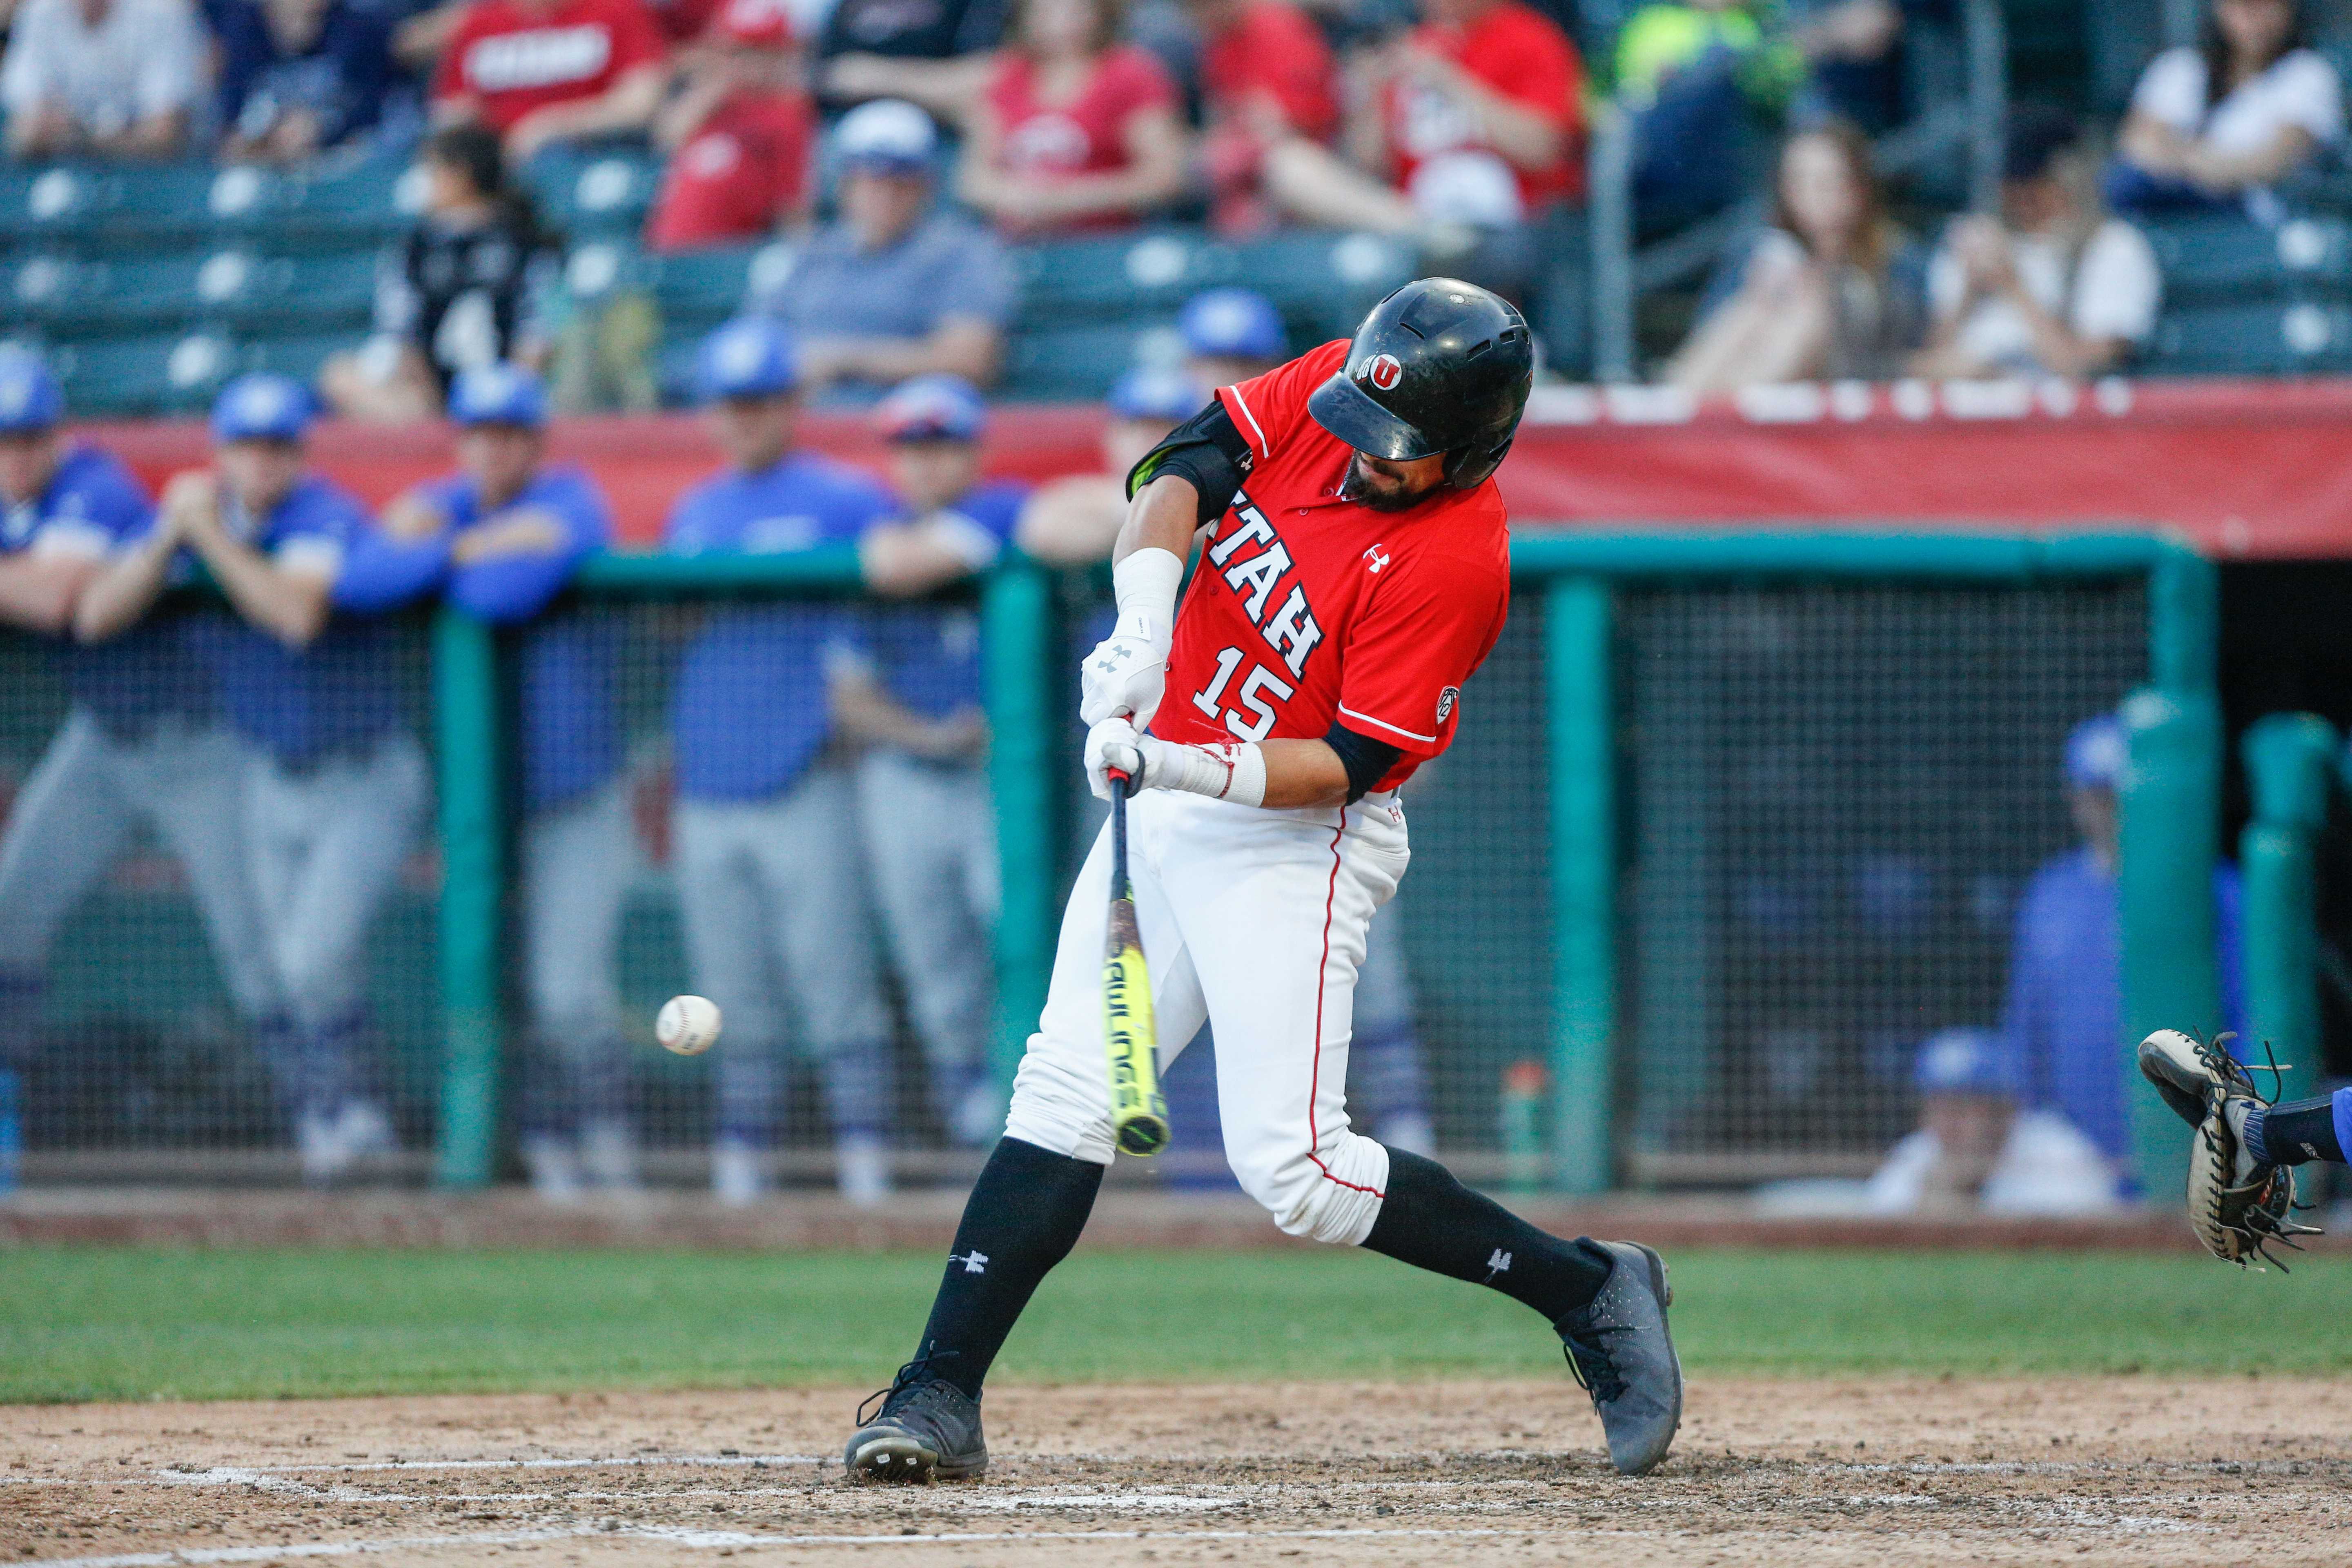 Erick Migueles (15) takes a cut as the Utes take on the BYU Cougars at Smith's Ballpark May 8, 2018.  (Photo by: Justin Prather | The Daily Utah Chronicle).